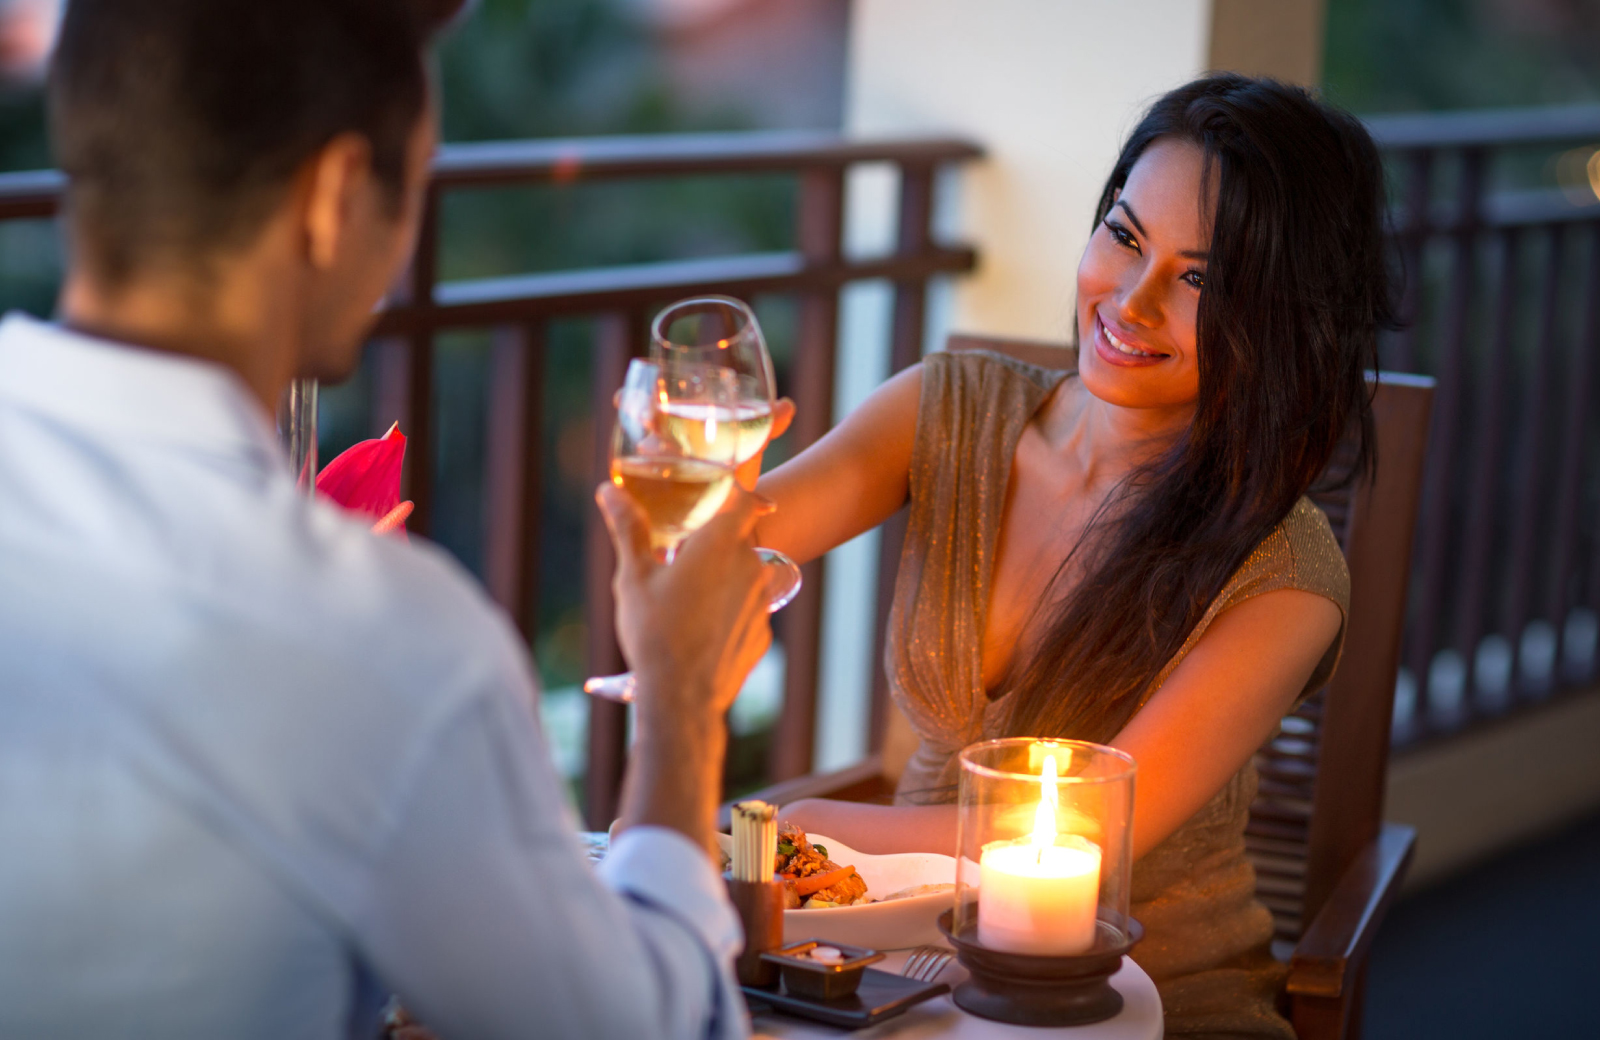 Best Date Night Restaurants in Norwalk, CT